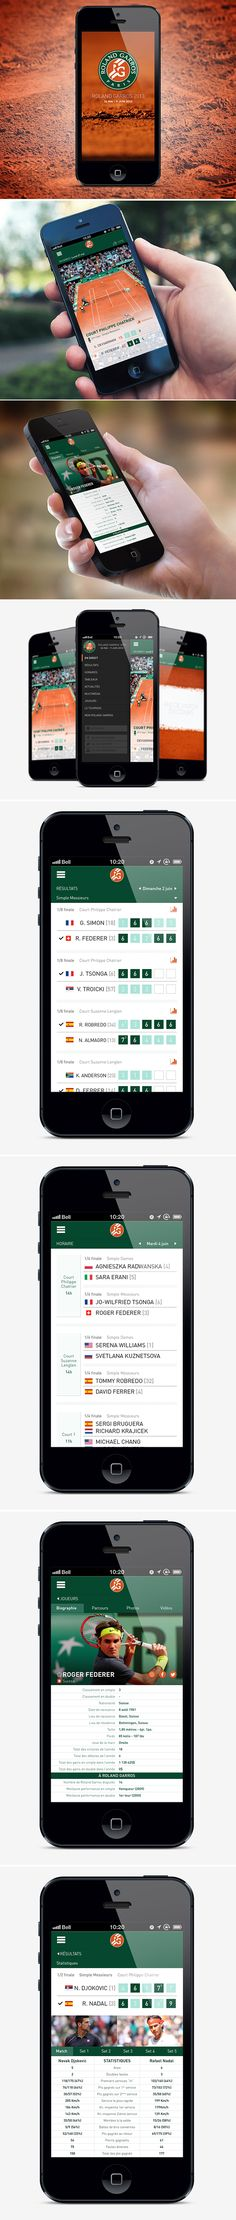 Roland Garros mobile app revamp on Behance